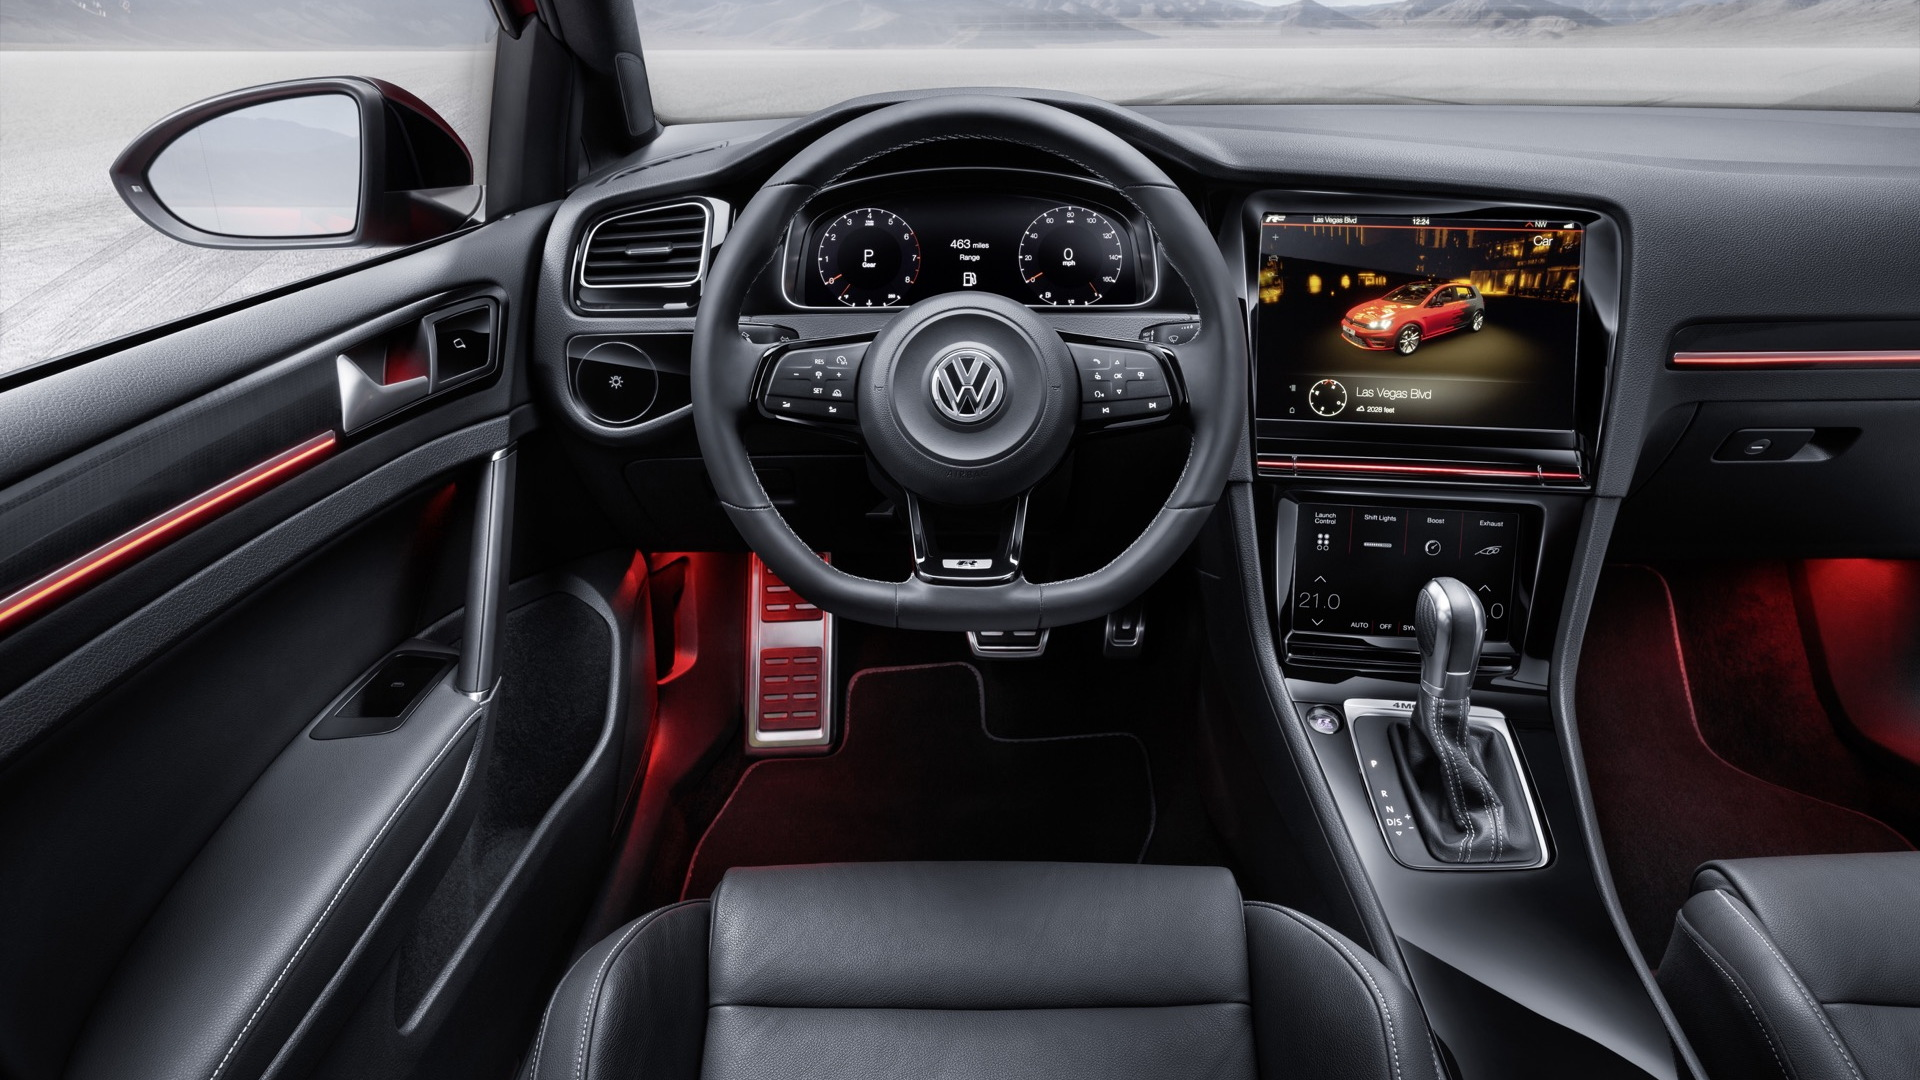 Volkswagen Golf R Touch concept, 2015 Consumer Electronics Show